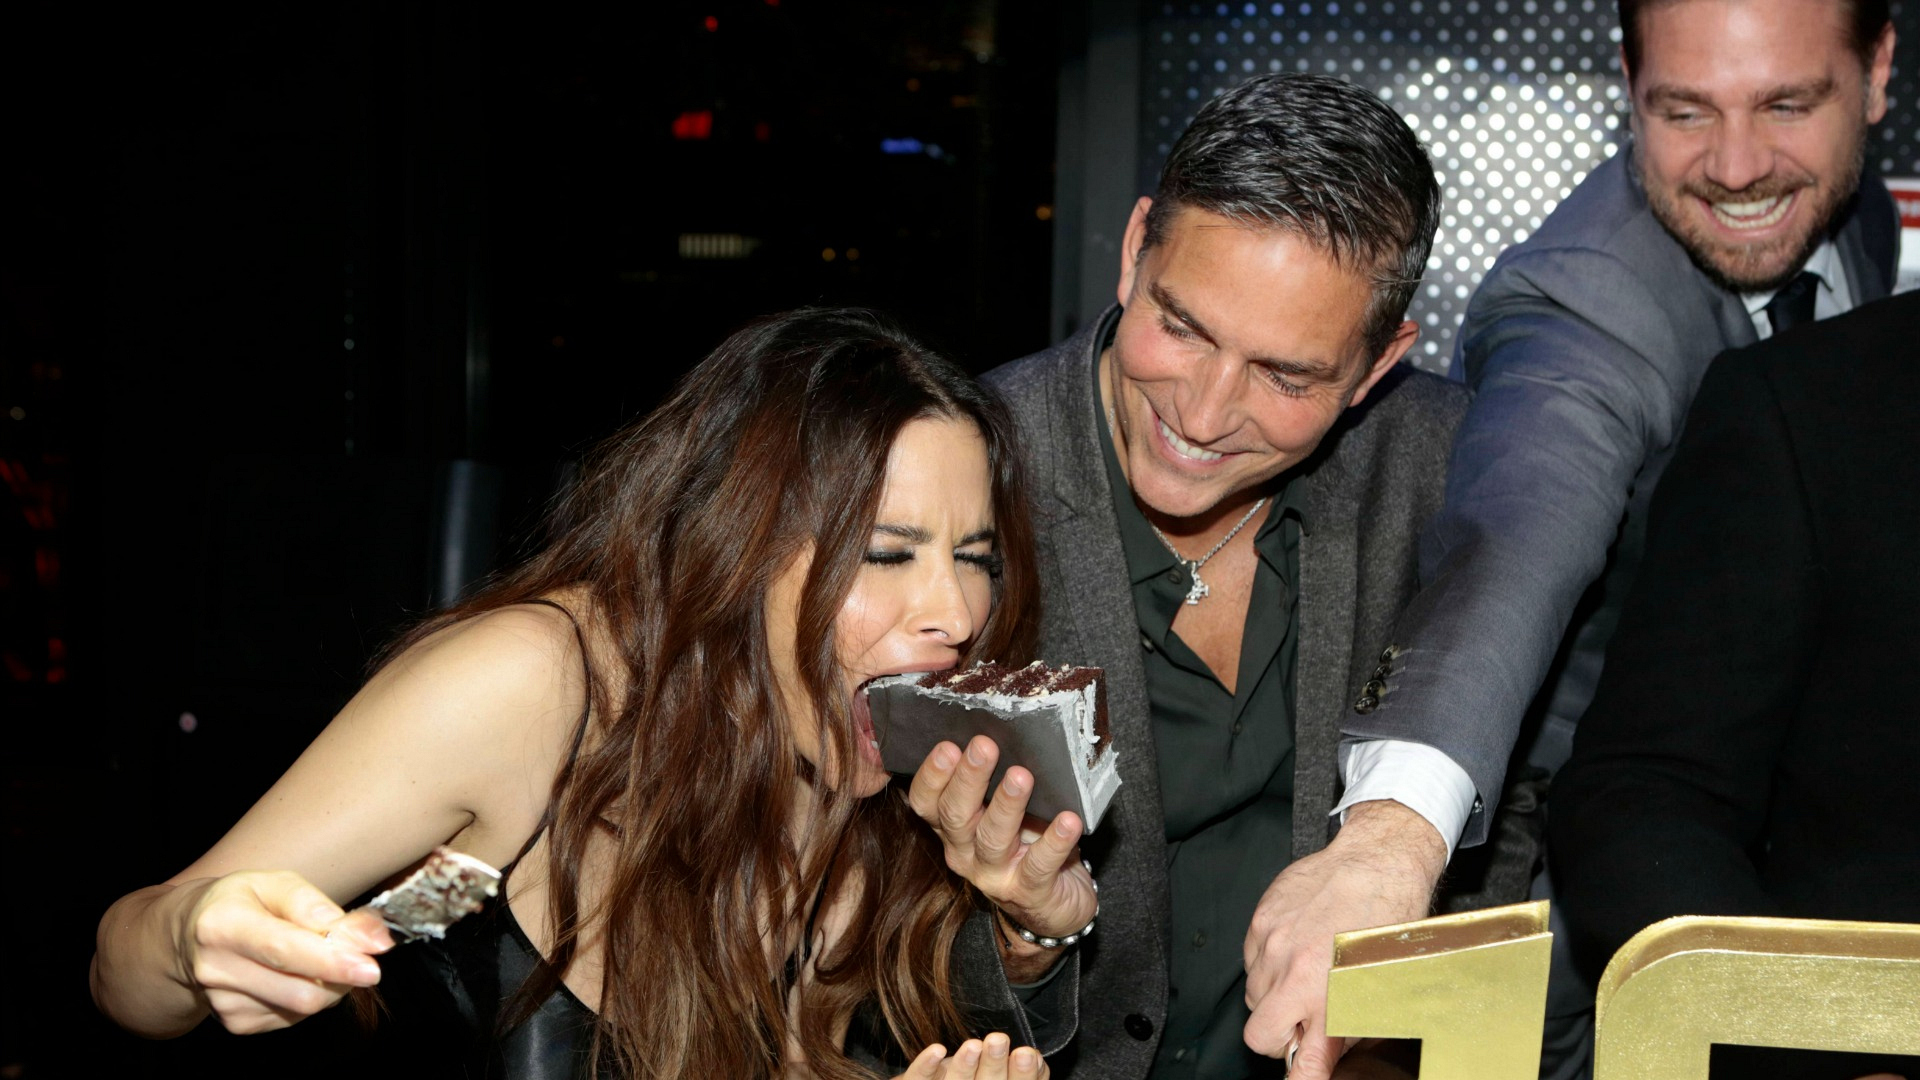 Jim Caviezel fed Sarah Shahi a huge slice of cake.